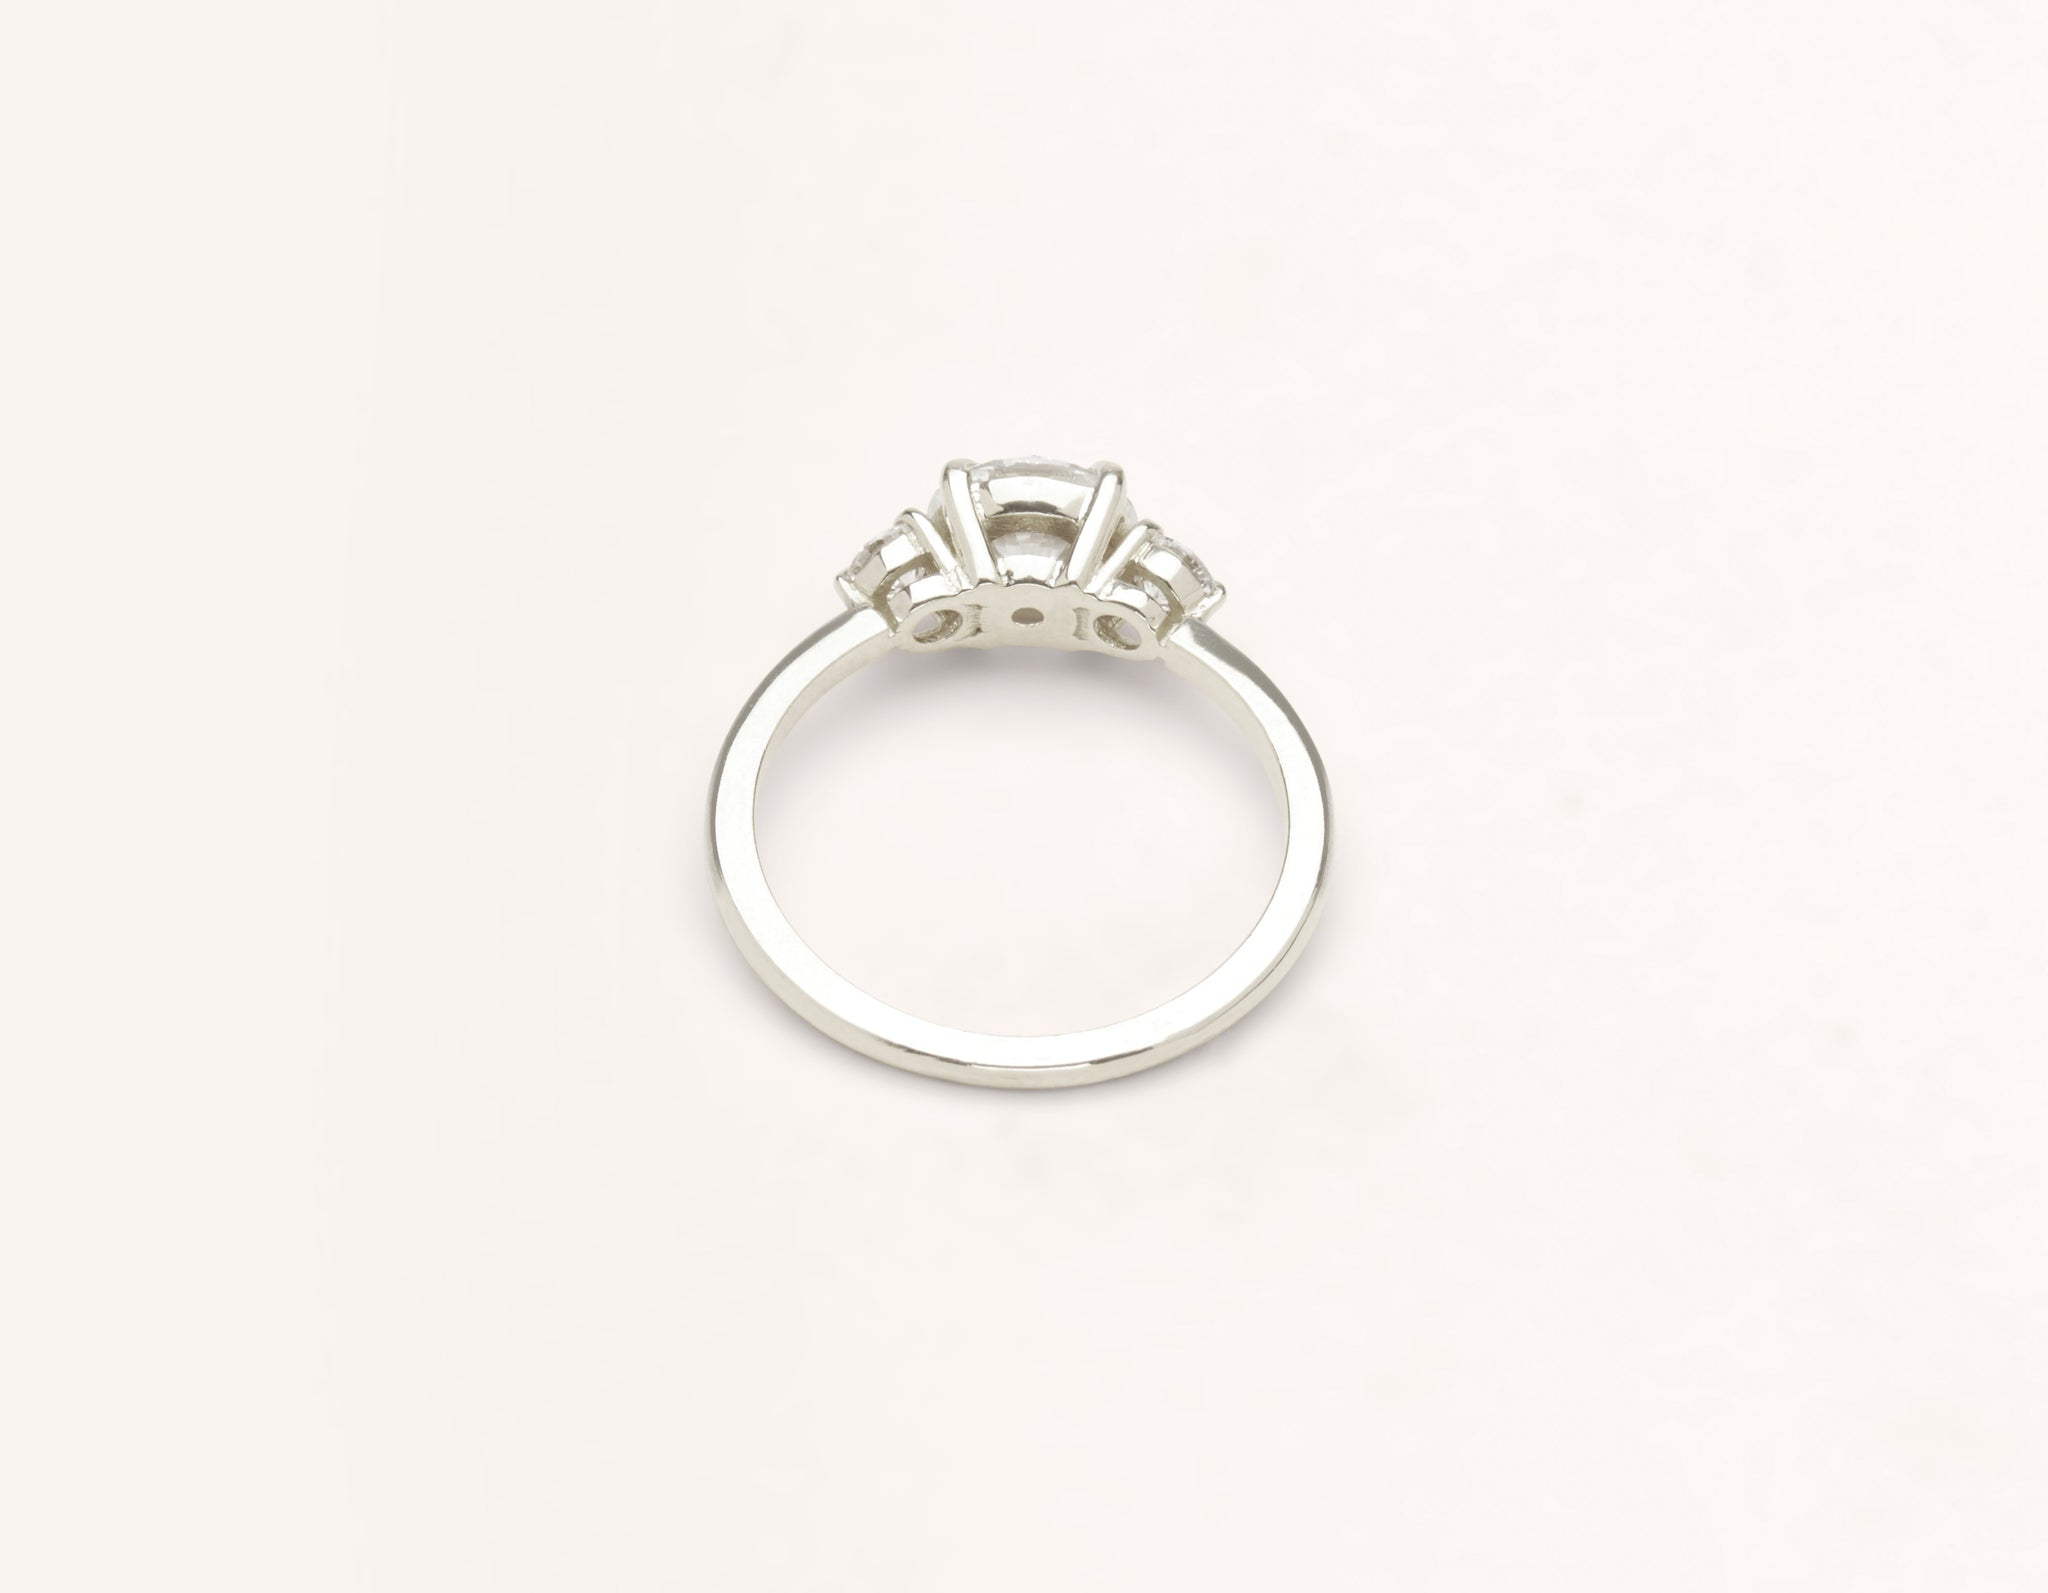 Vrai & Oro 18k solid white gold Diamond engagement ring The Three Stone simple classic band